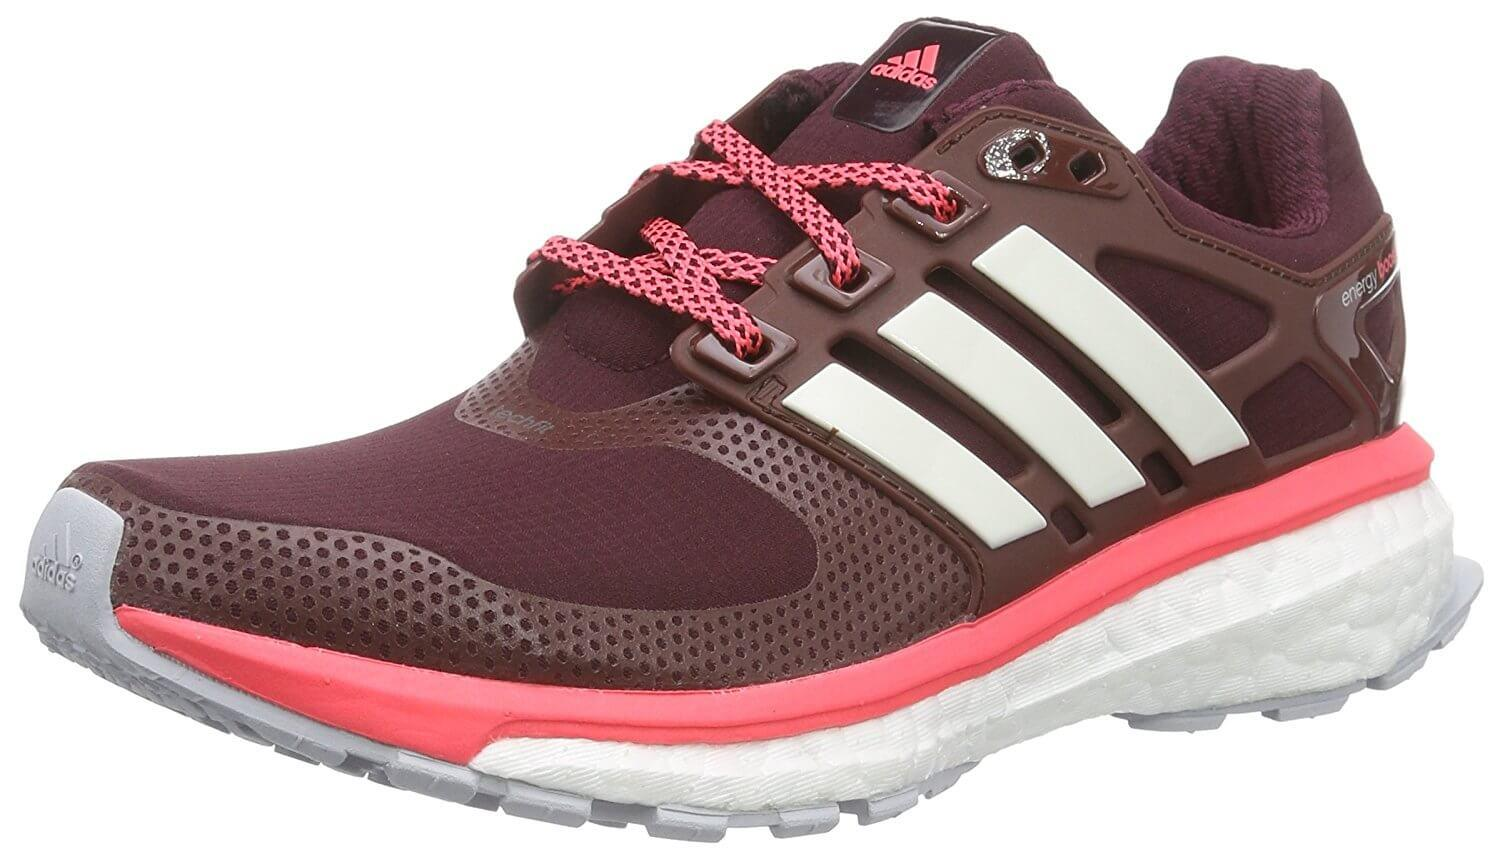 buy online 68f75 dcf72 ... usa adidas energy boost 2.0 atr to buy or not in oct 2018 6b4c7 ec3b5